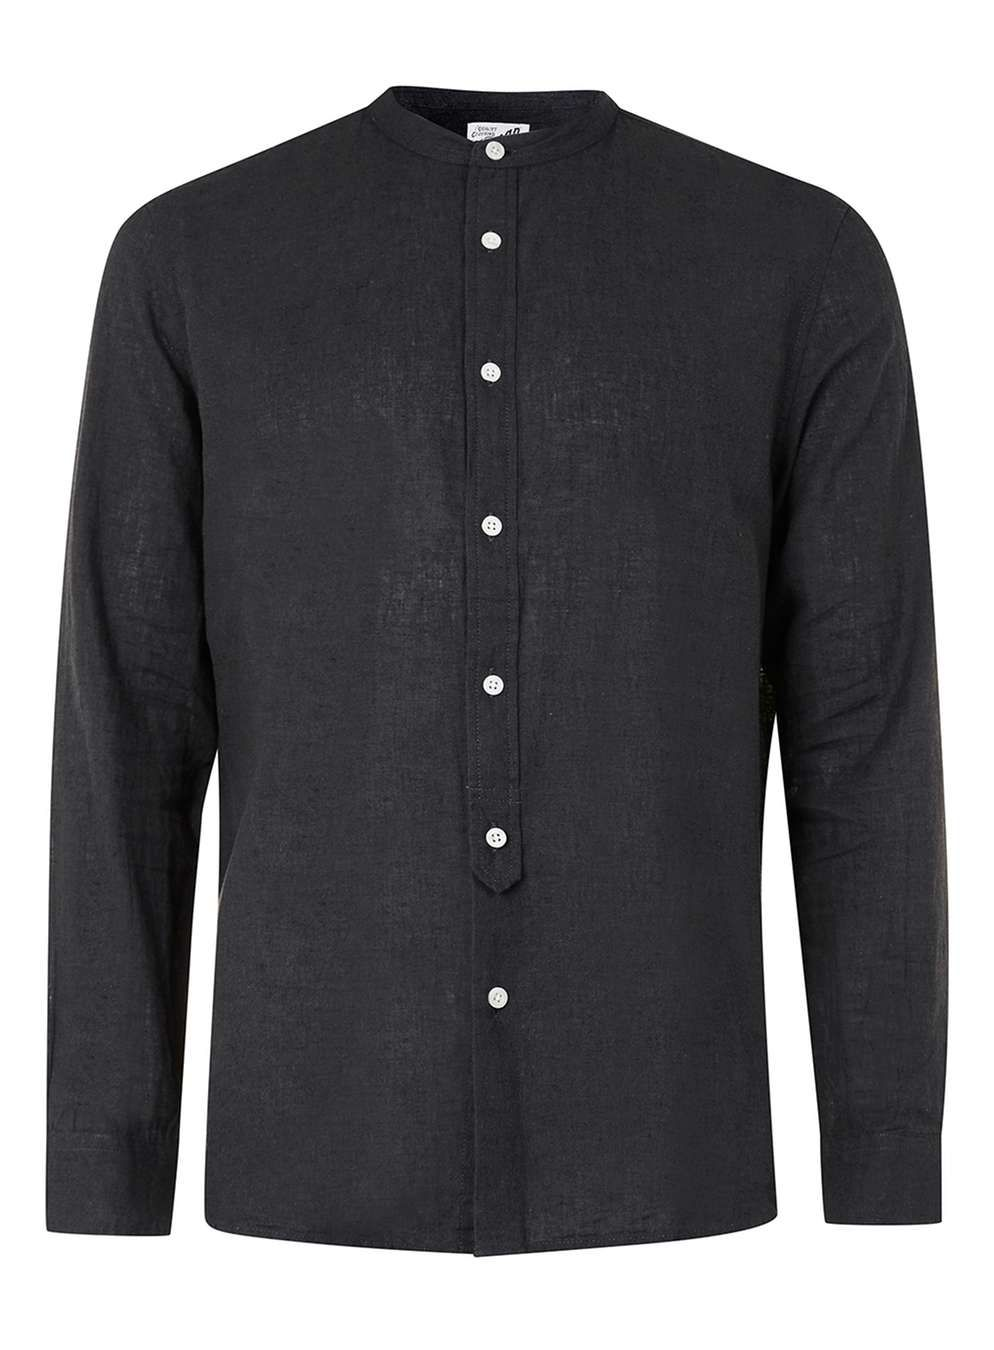 Ltd Black Linen Rich Stand Collar Shirt Collared Shirts Clothing